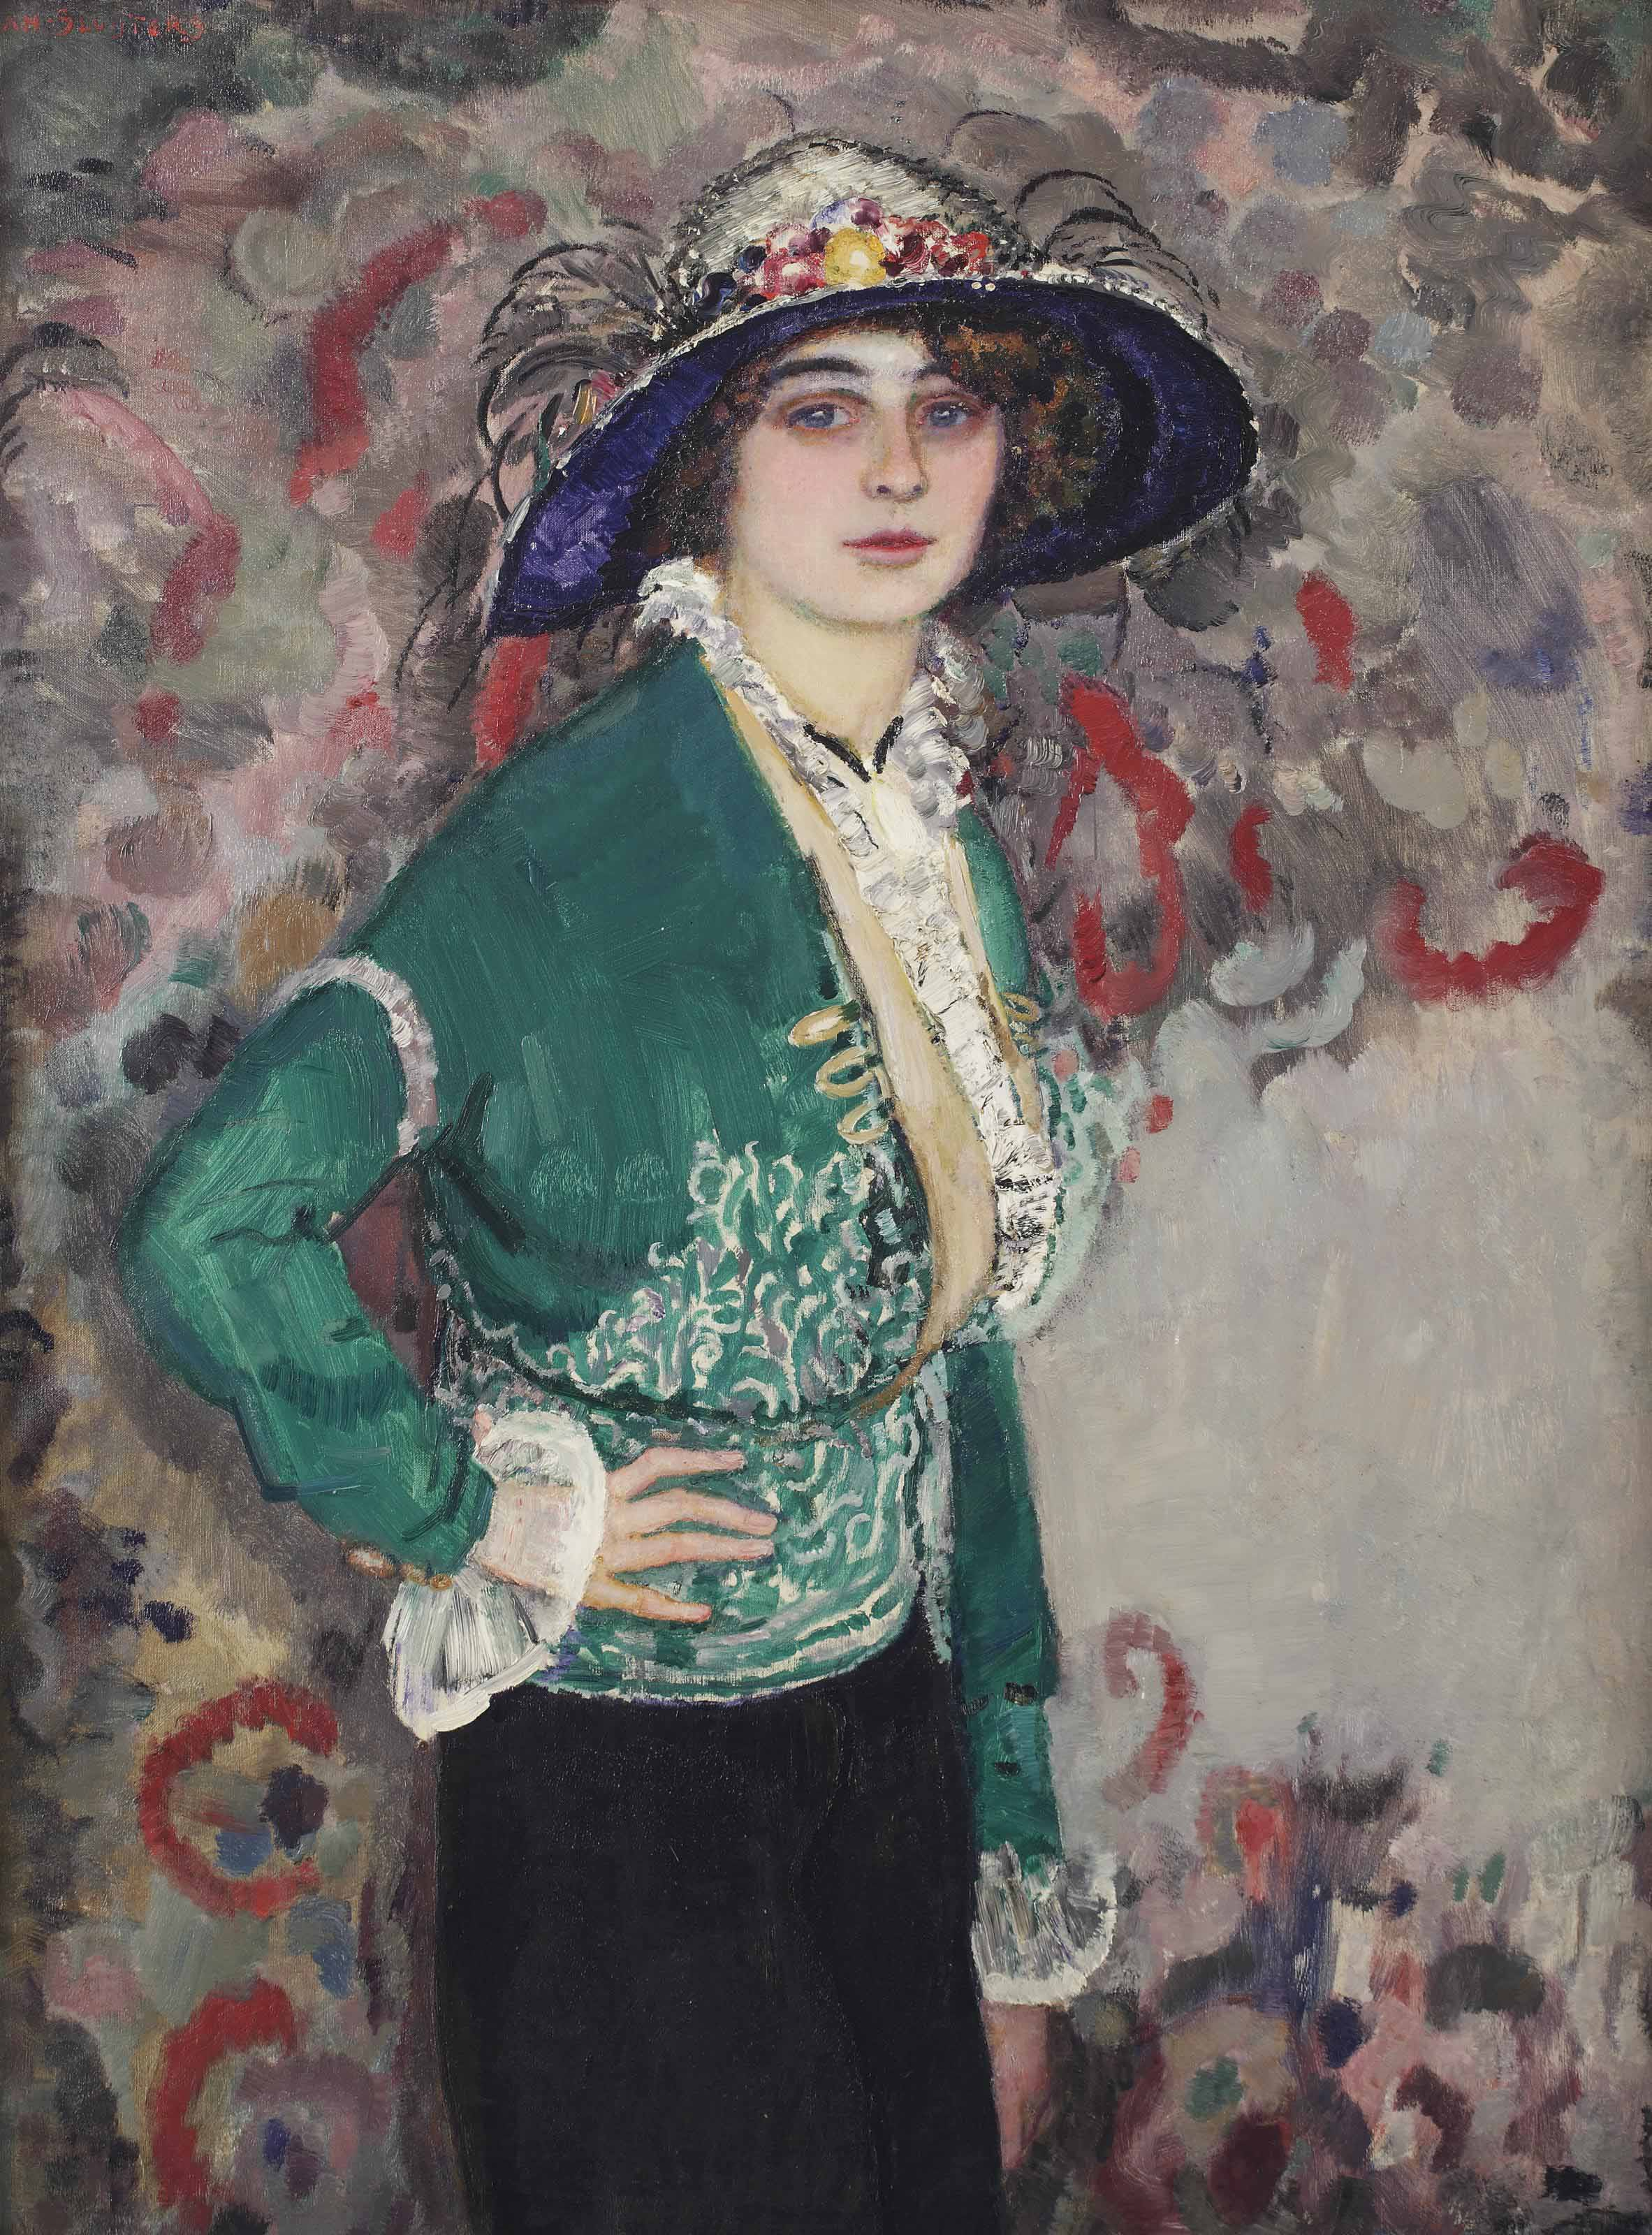 A portrait of a lady with a hat